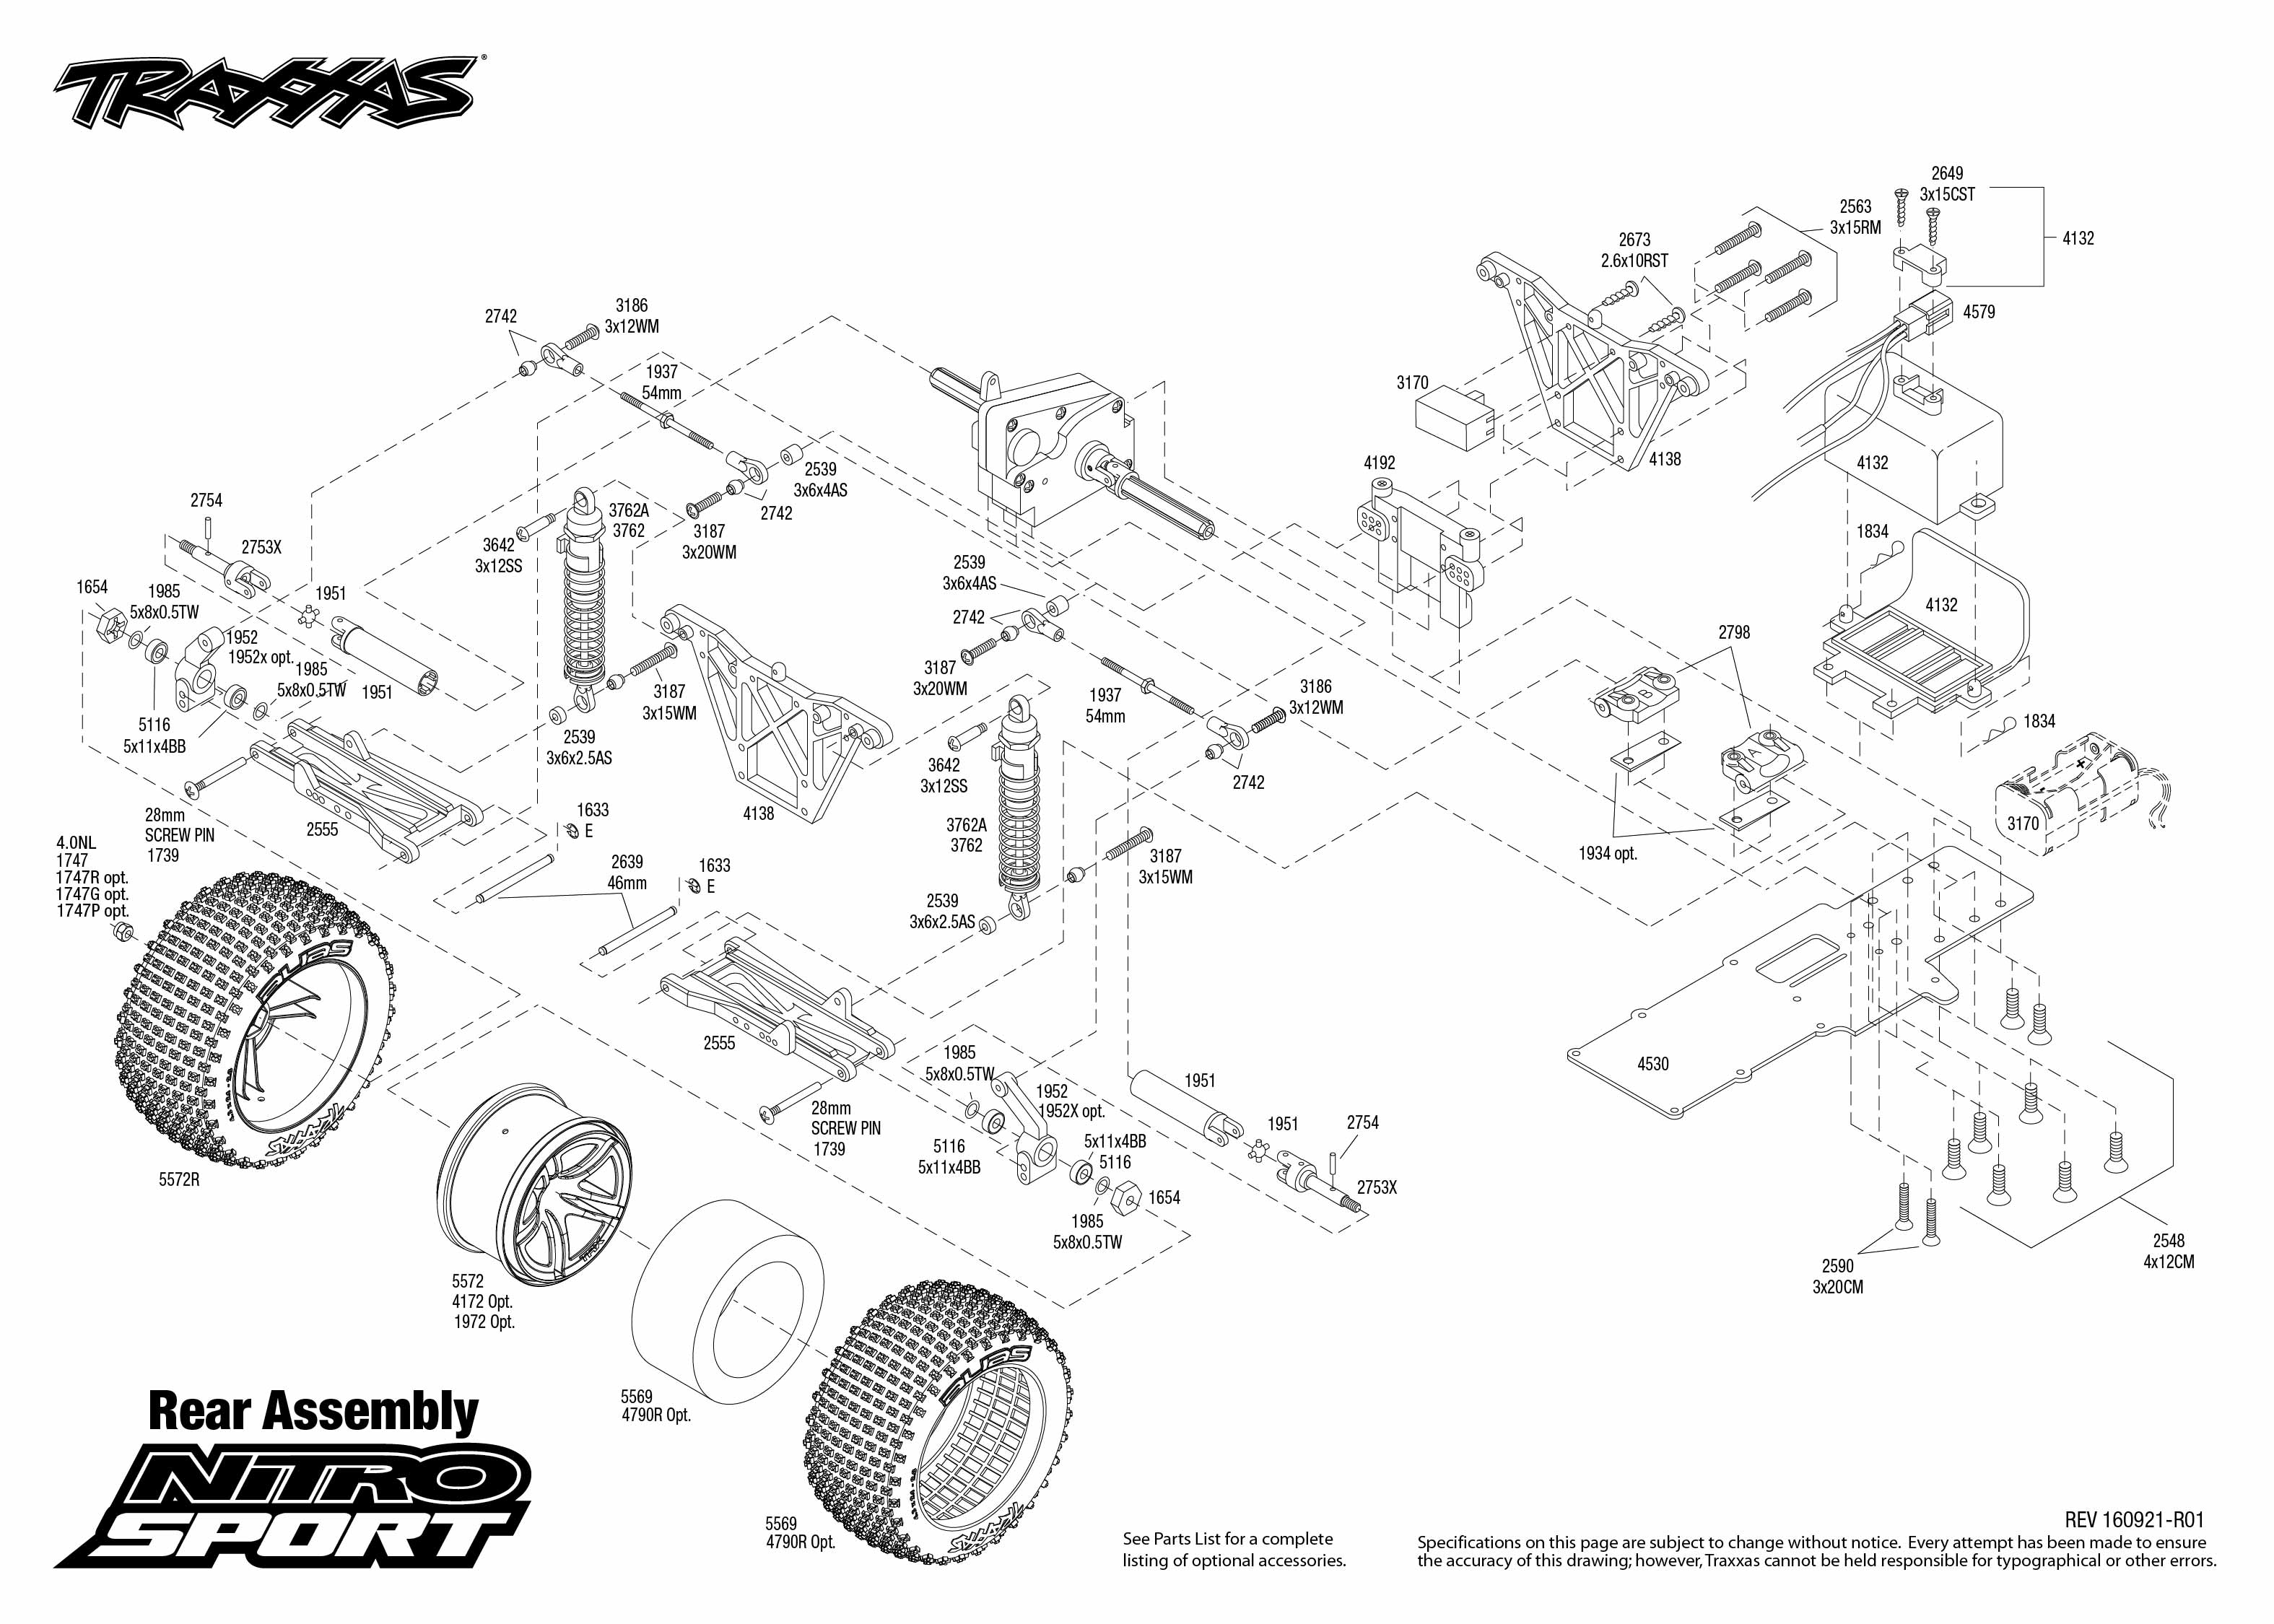 Nitro Sport 1 Rear Assembly Exploded View